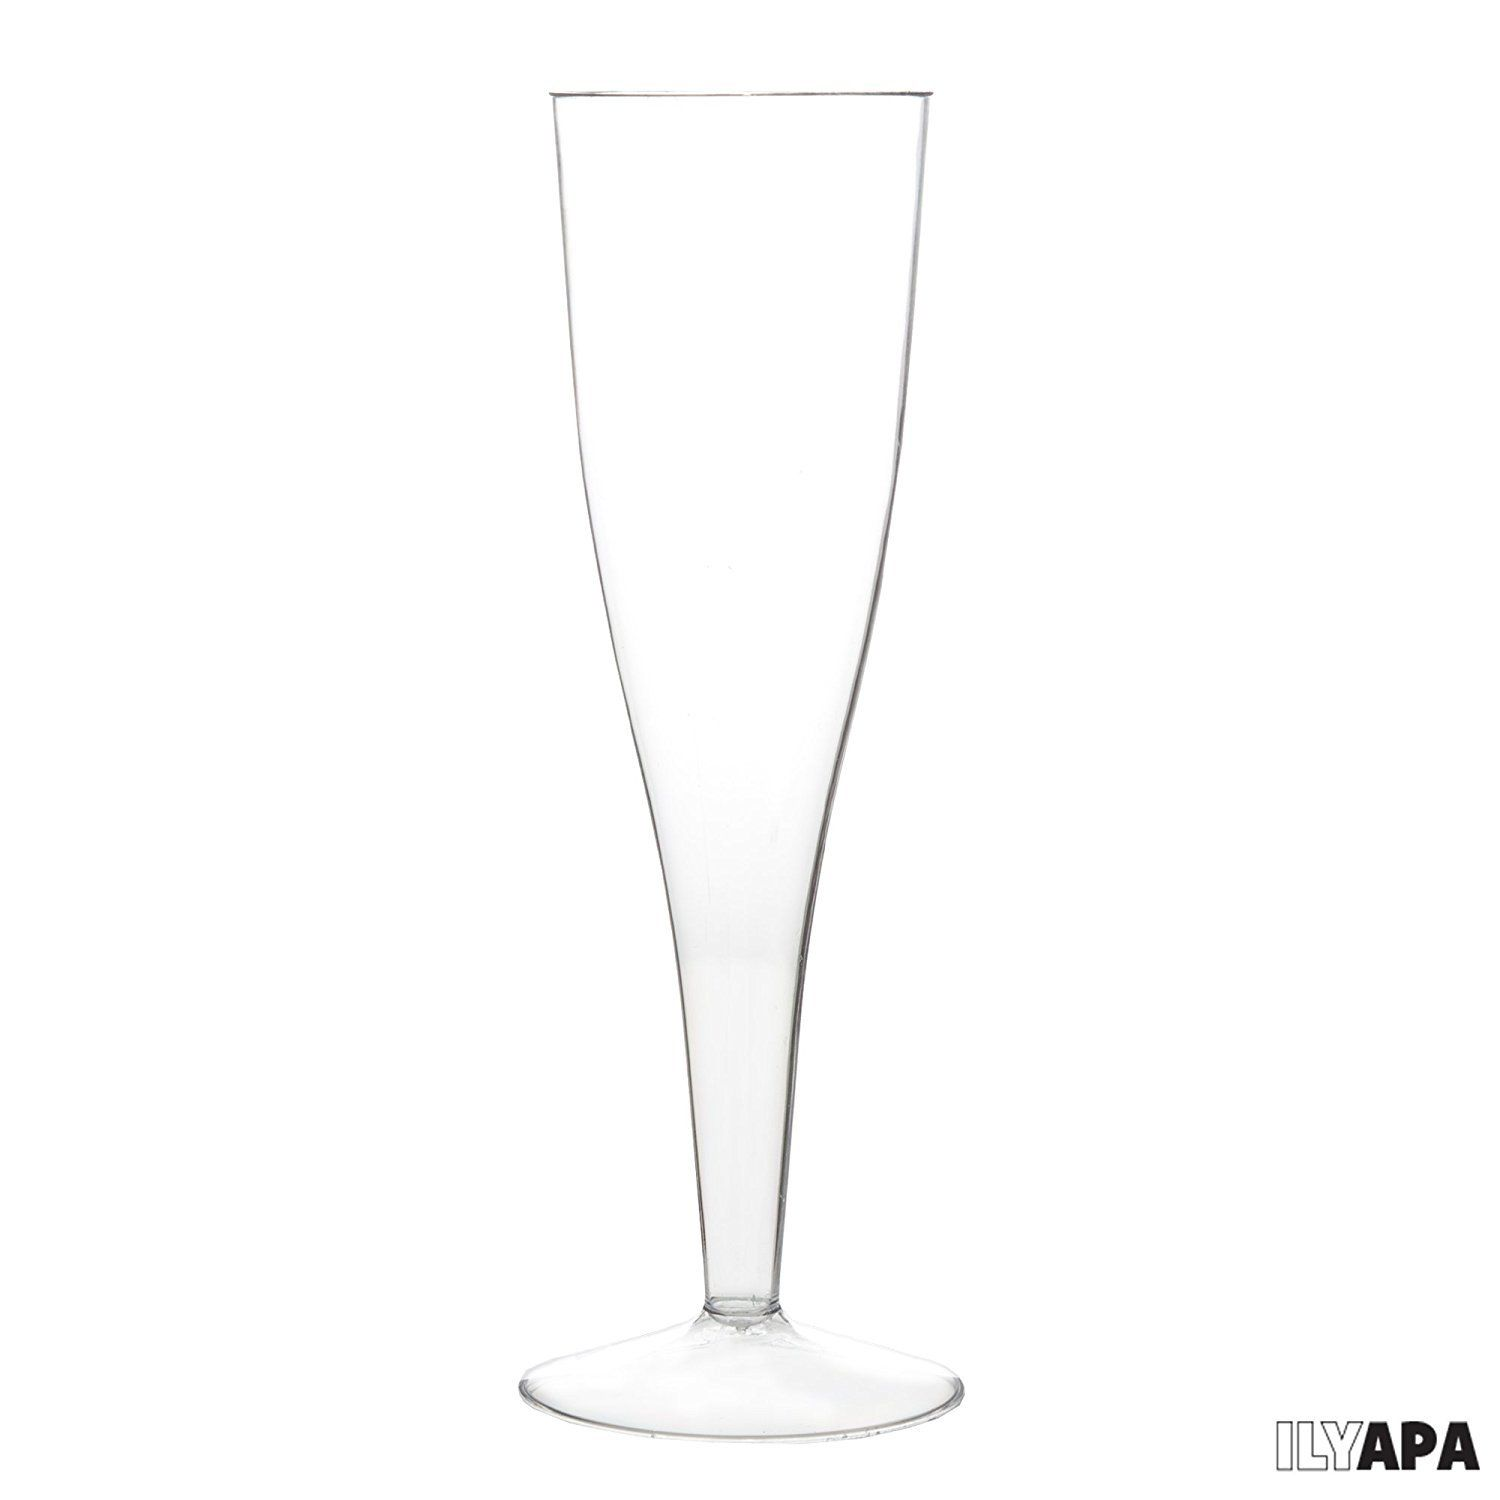 Bulk One Piece Plastic Champagne Flute Glasses For Wedding Or Party 72 To View Plastic Champagne Flutes Champagne Flute Glasses Disposable Champagne Flutes